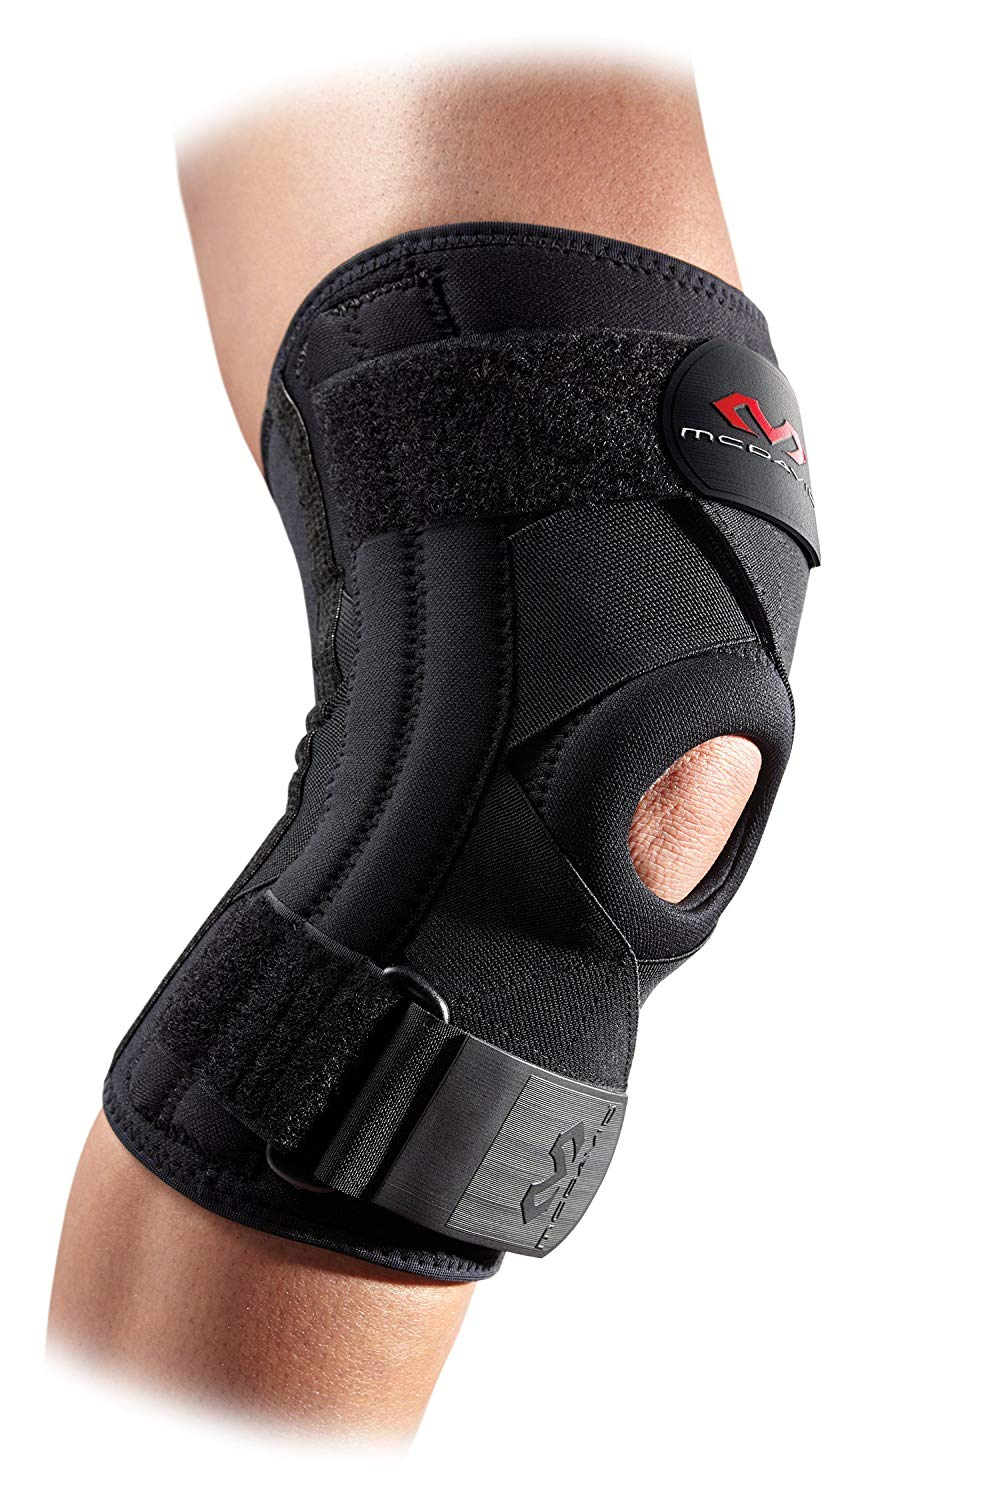 McDavid Ligament knee brace